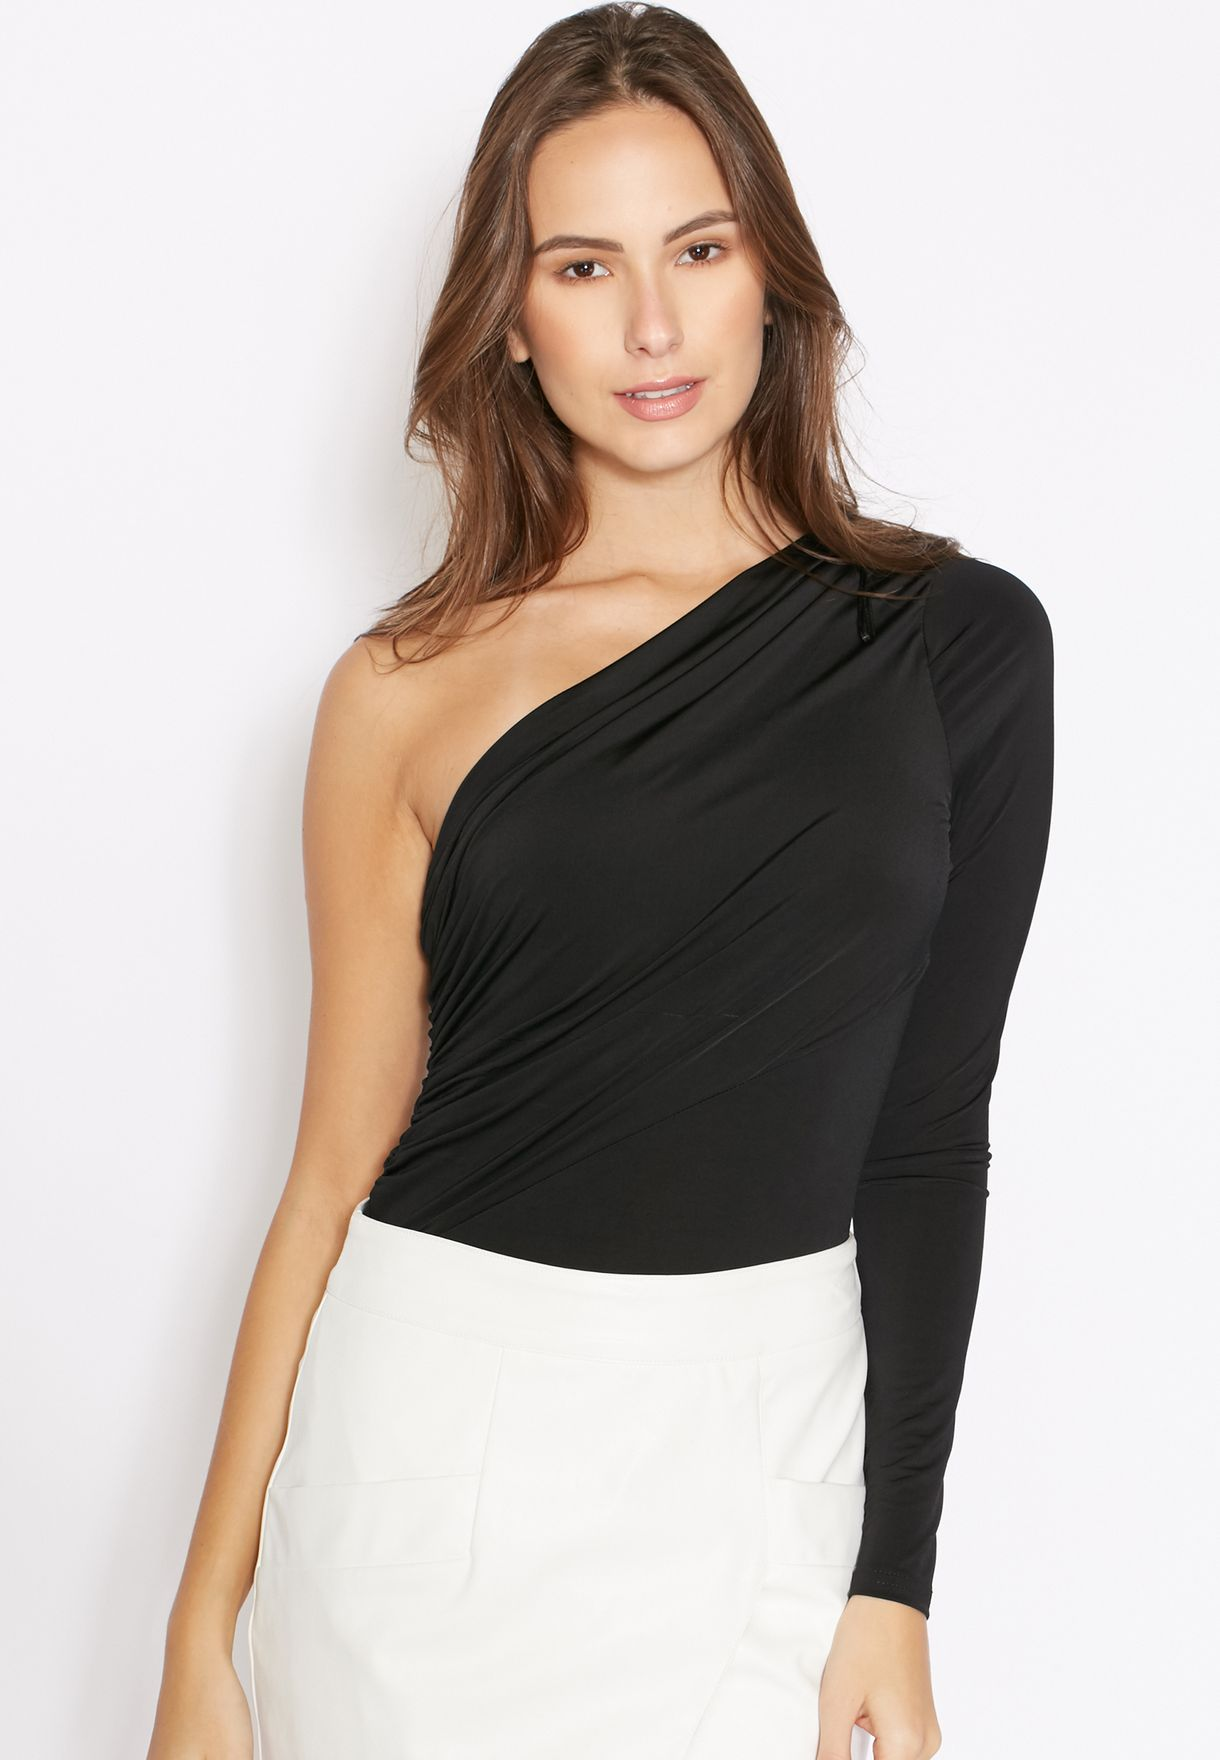 f776ad81f4 Shop Ginger black One Shoulder Body for Women in Qatar - GI121AT51NAA